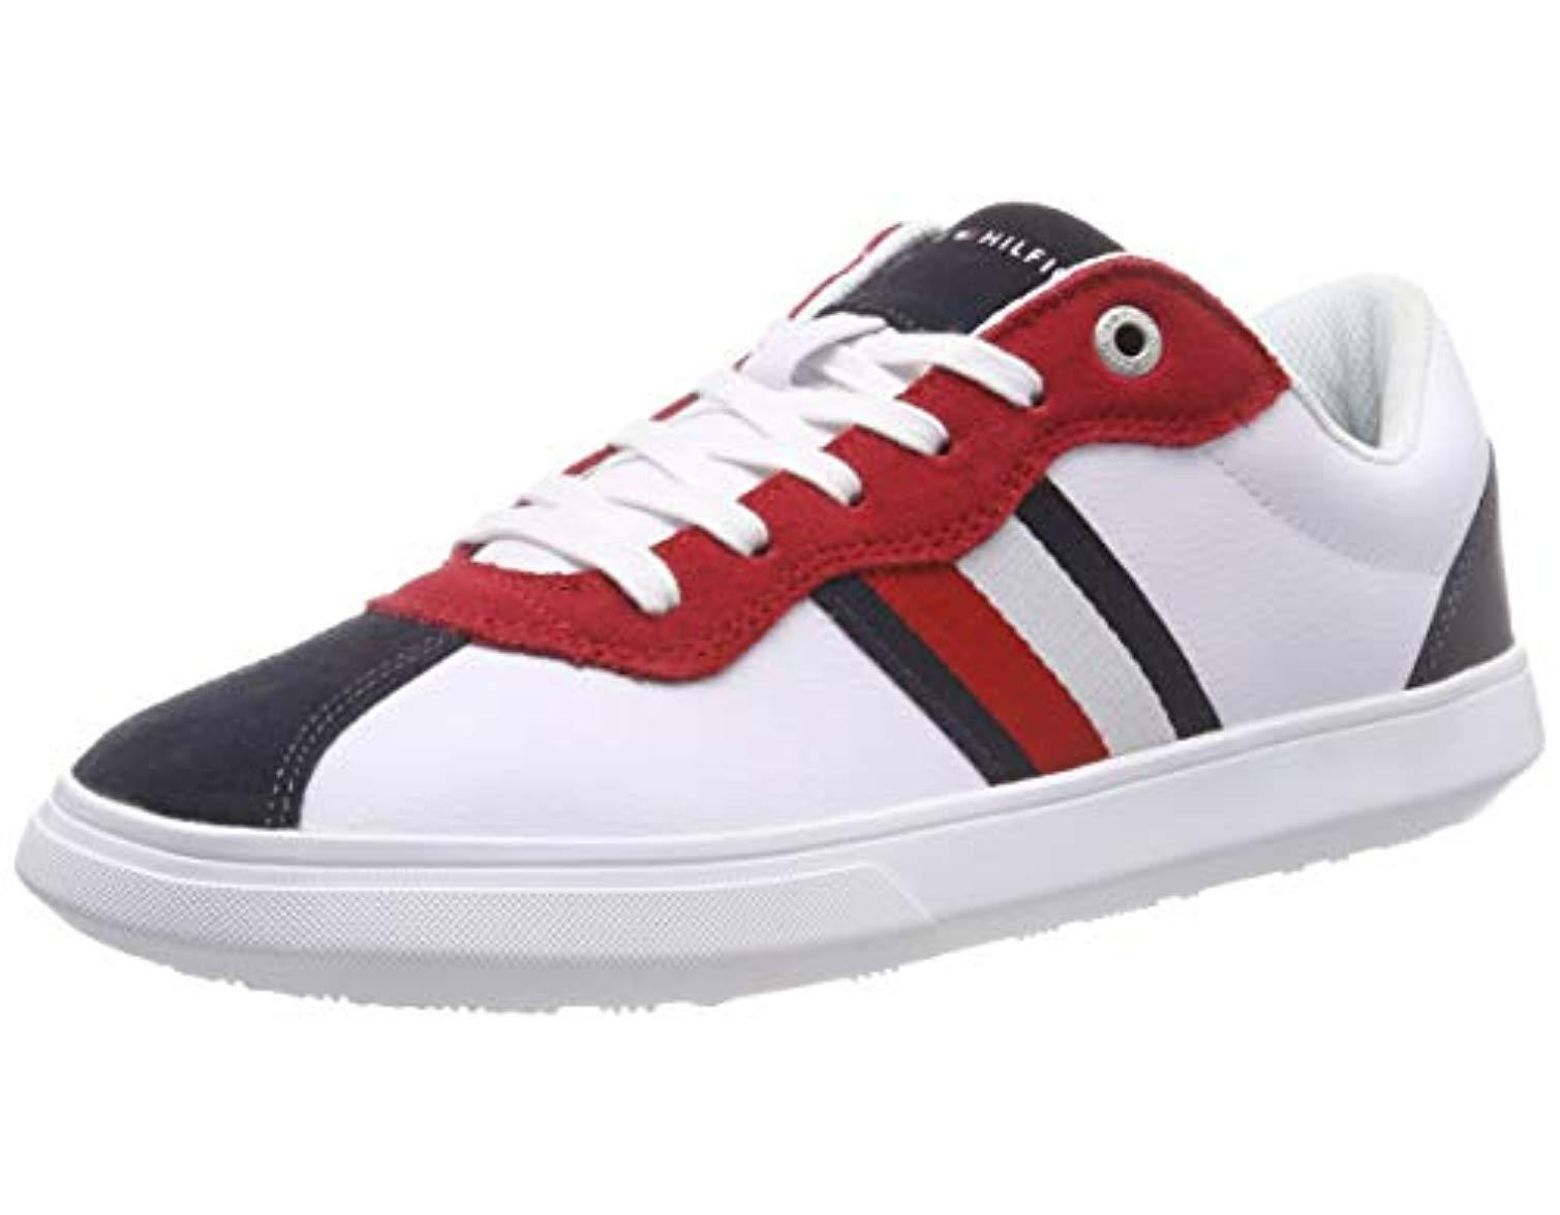 f0559ee9f27 Tommy Hilfiger Essential Corporate Cupsole Low-top Sneakers in White for  Men - Lyst